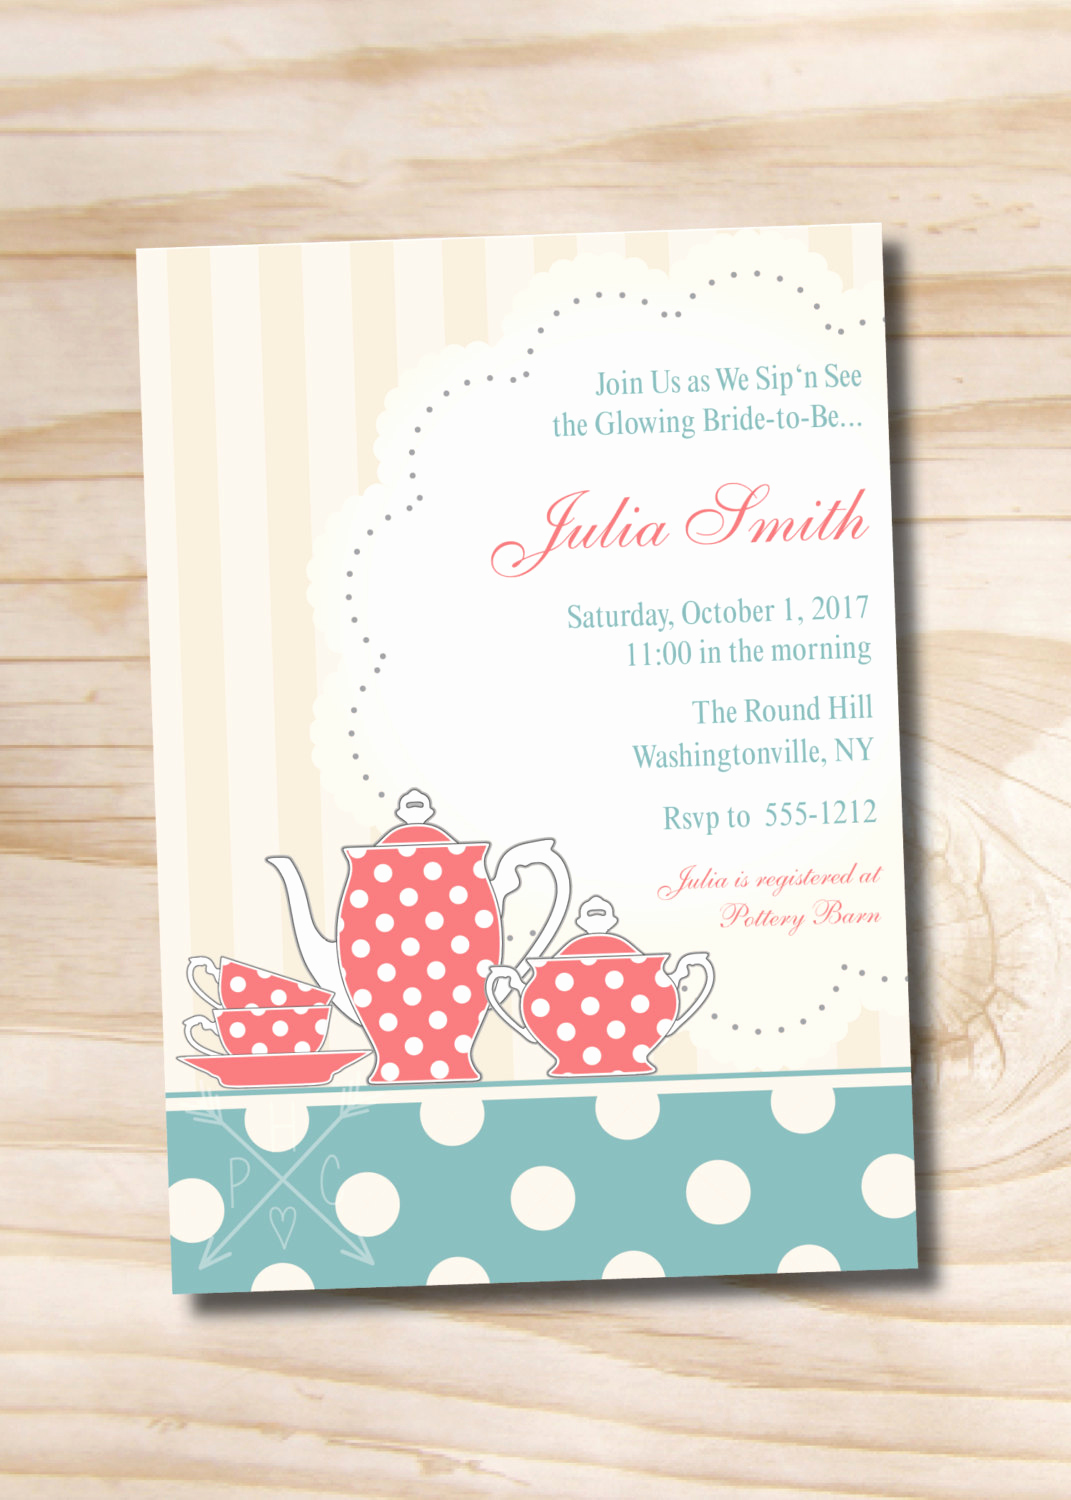 Sip N See Invitation Wording Awesome Vintage Tea Time Sip N See Shower Invitation Bridal Shower